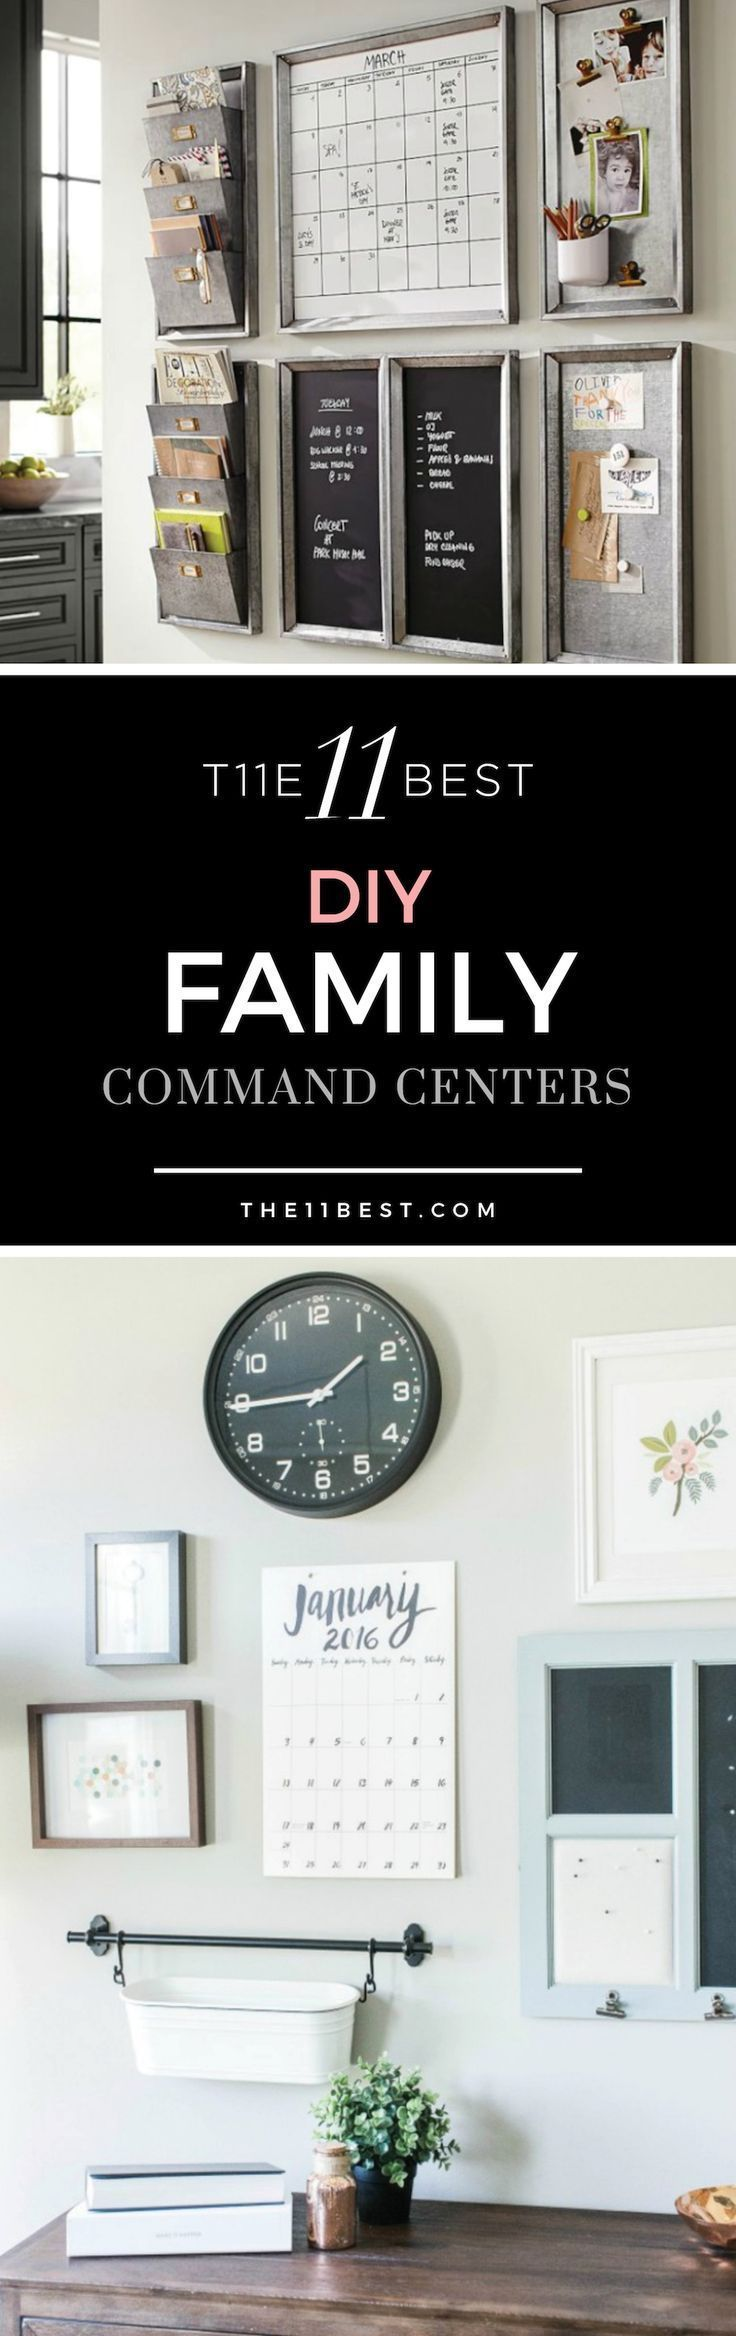 The 11 Best Family Command Centers